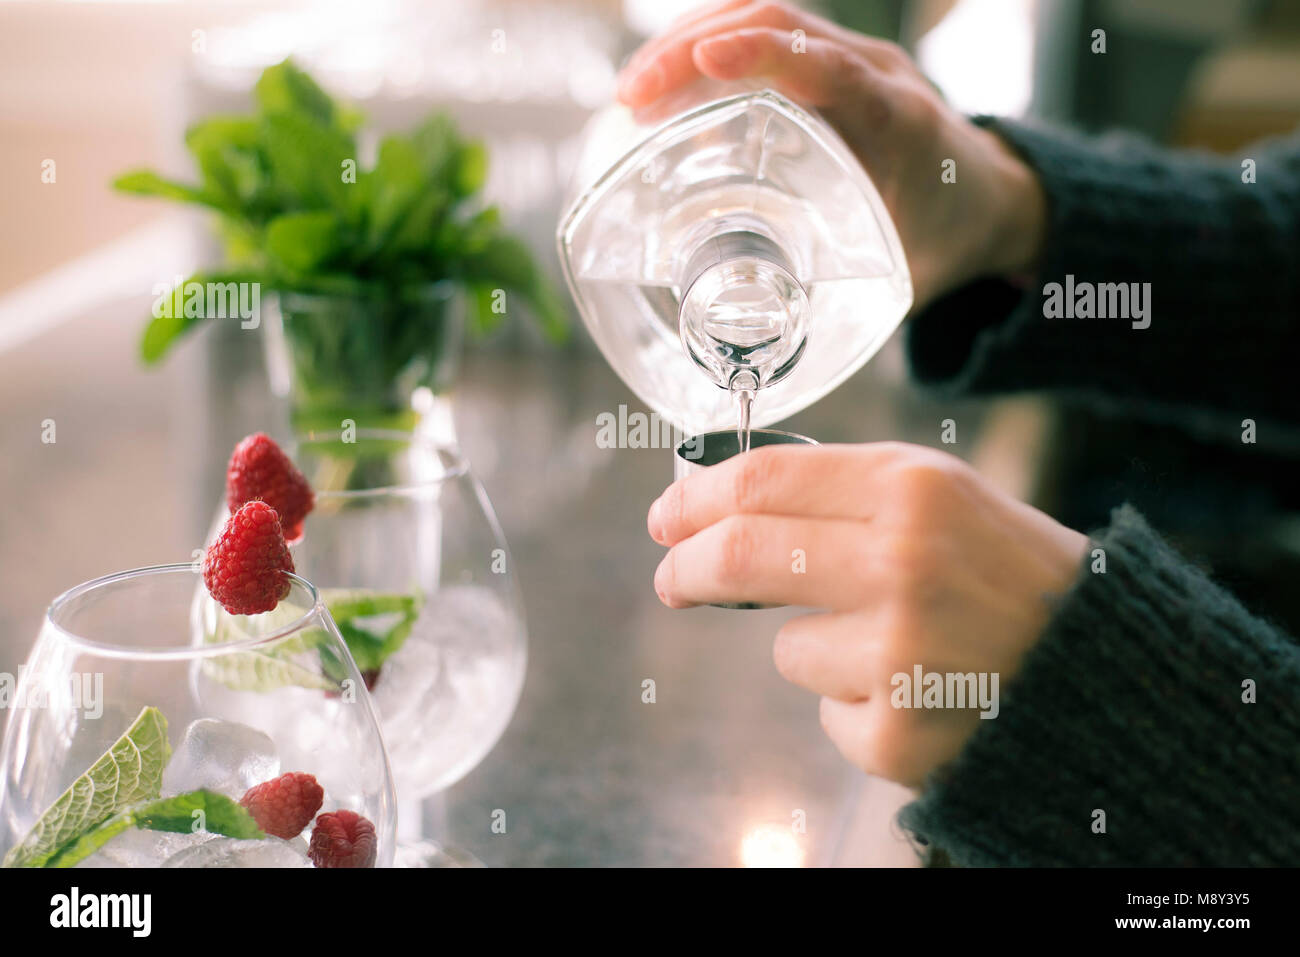 Gin and tonic drinks being prepared. Stock Photo